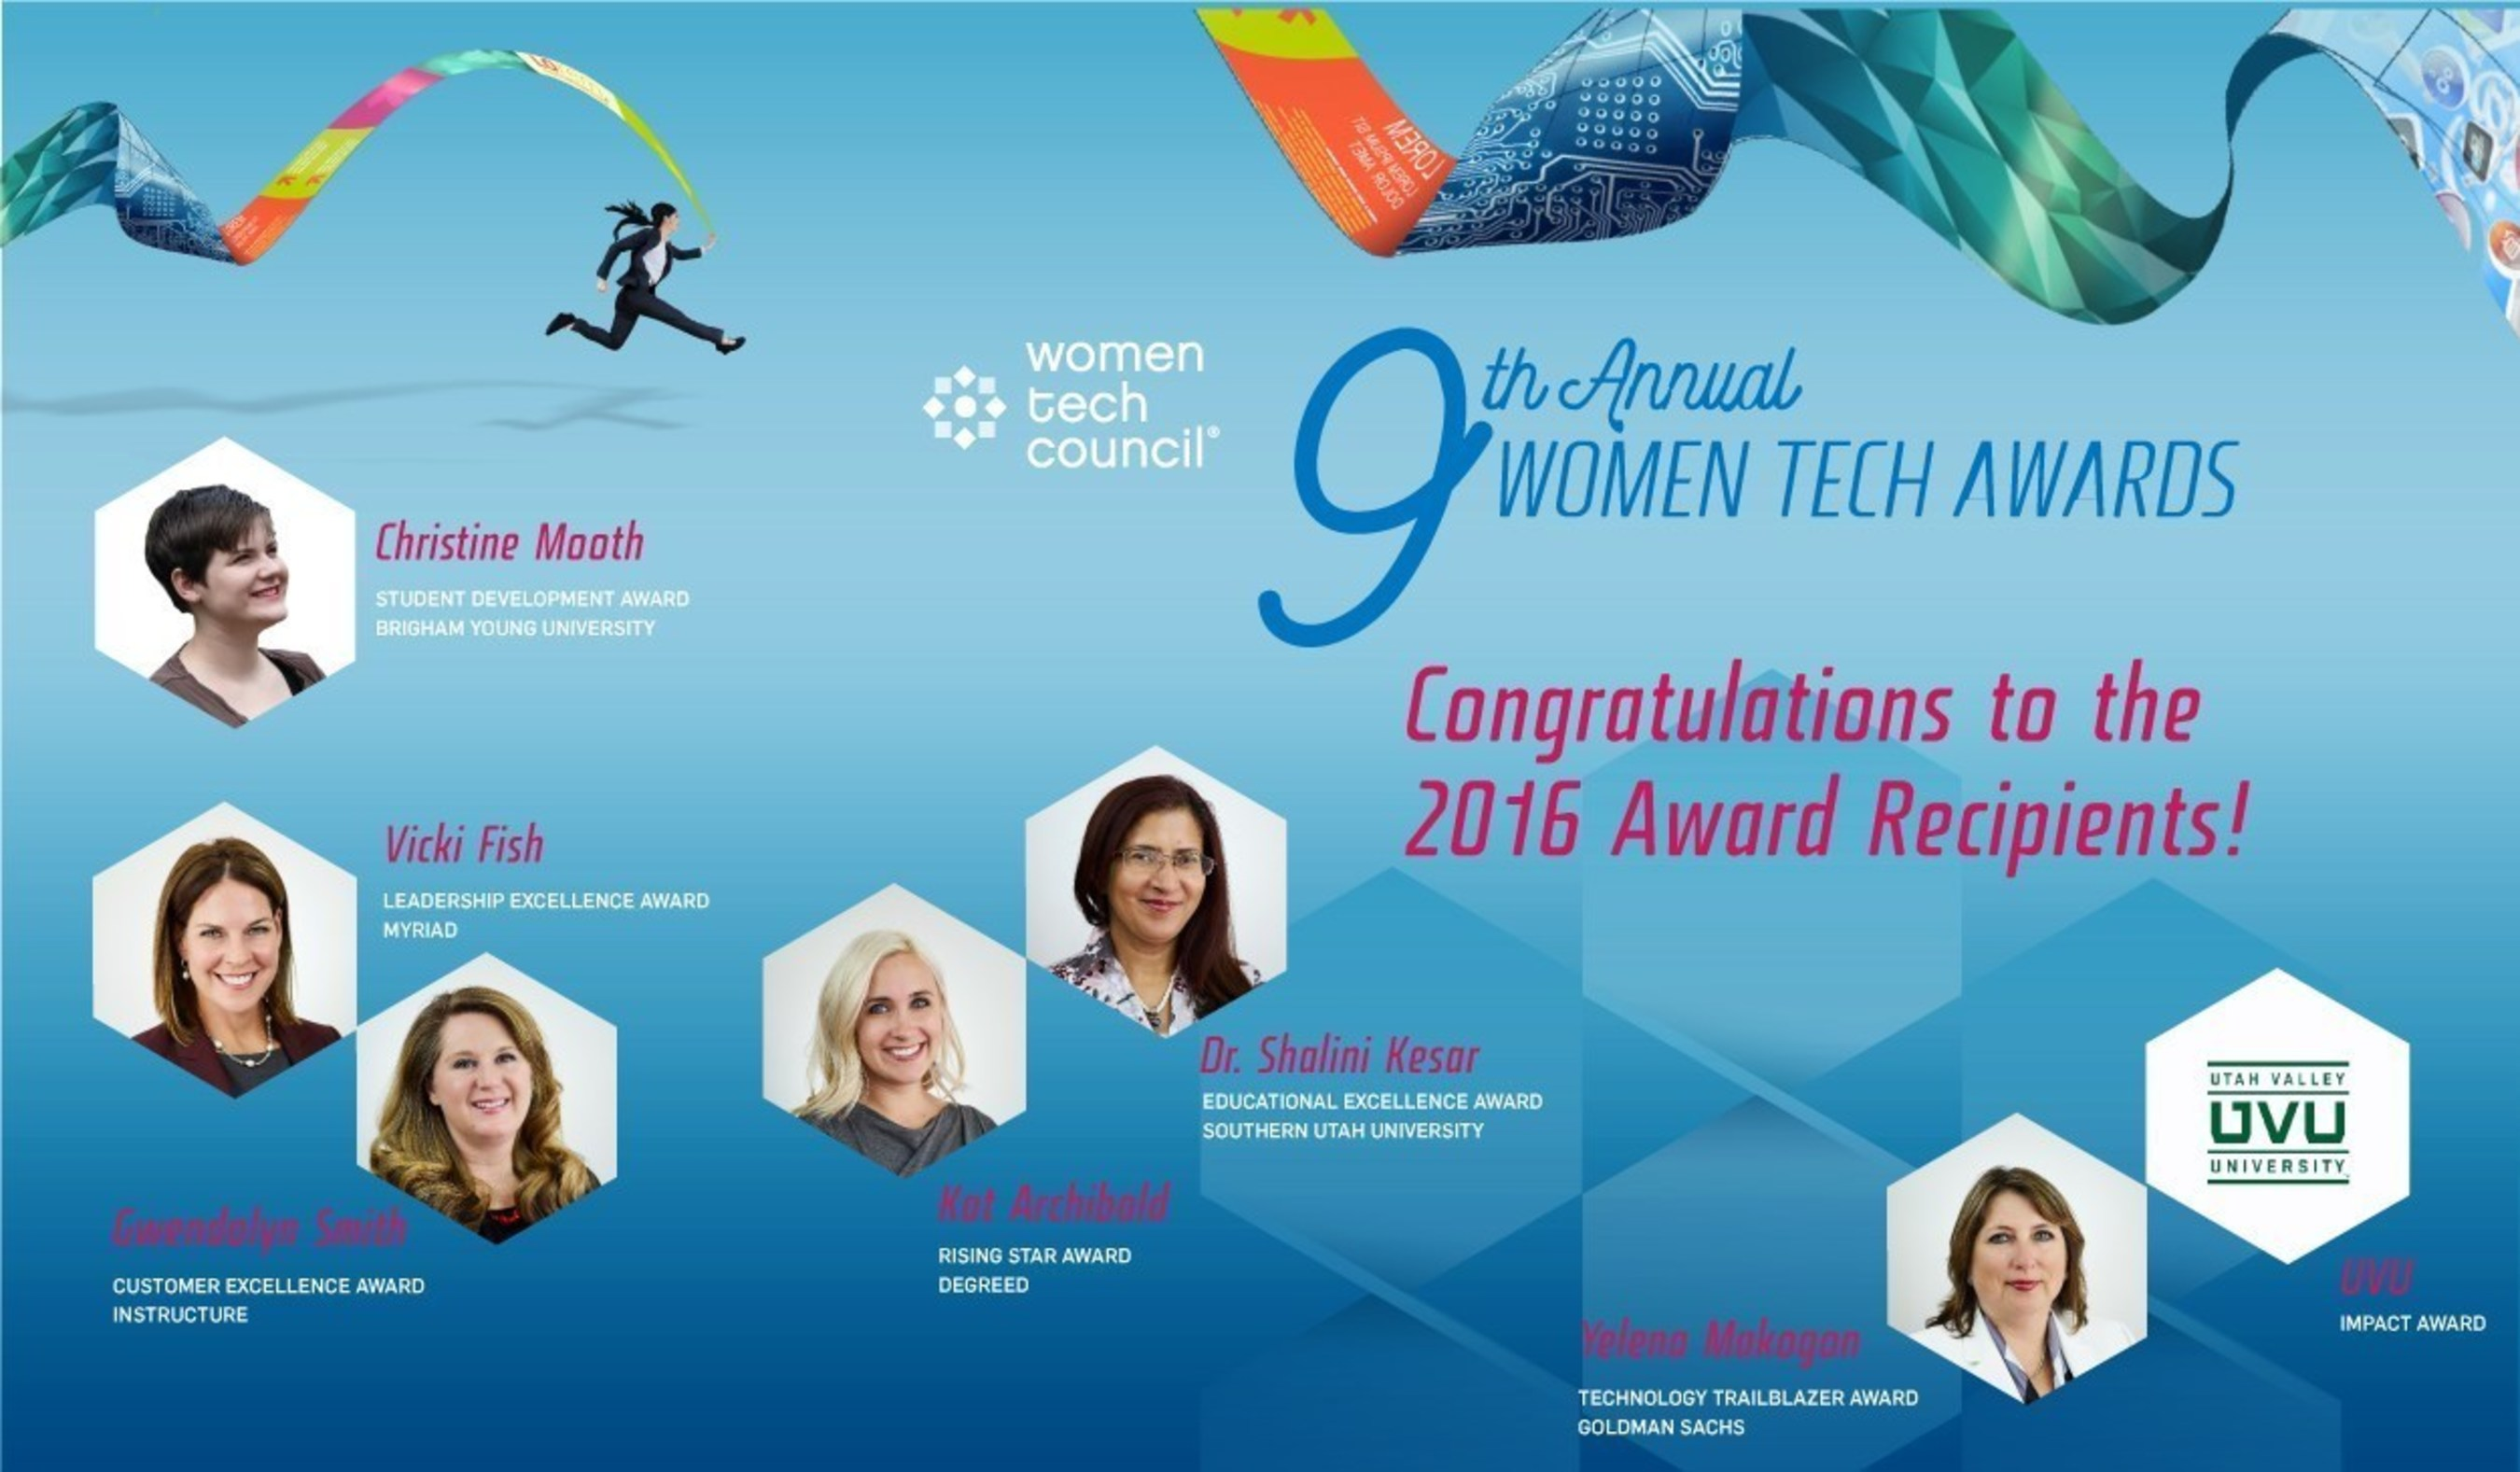 The Women Tech Council (WTC) recognized seven technology-focused women who are driving innovation, leading technology companies and contribution to the technology economy in the Ninth Annual Women Tech Awards.